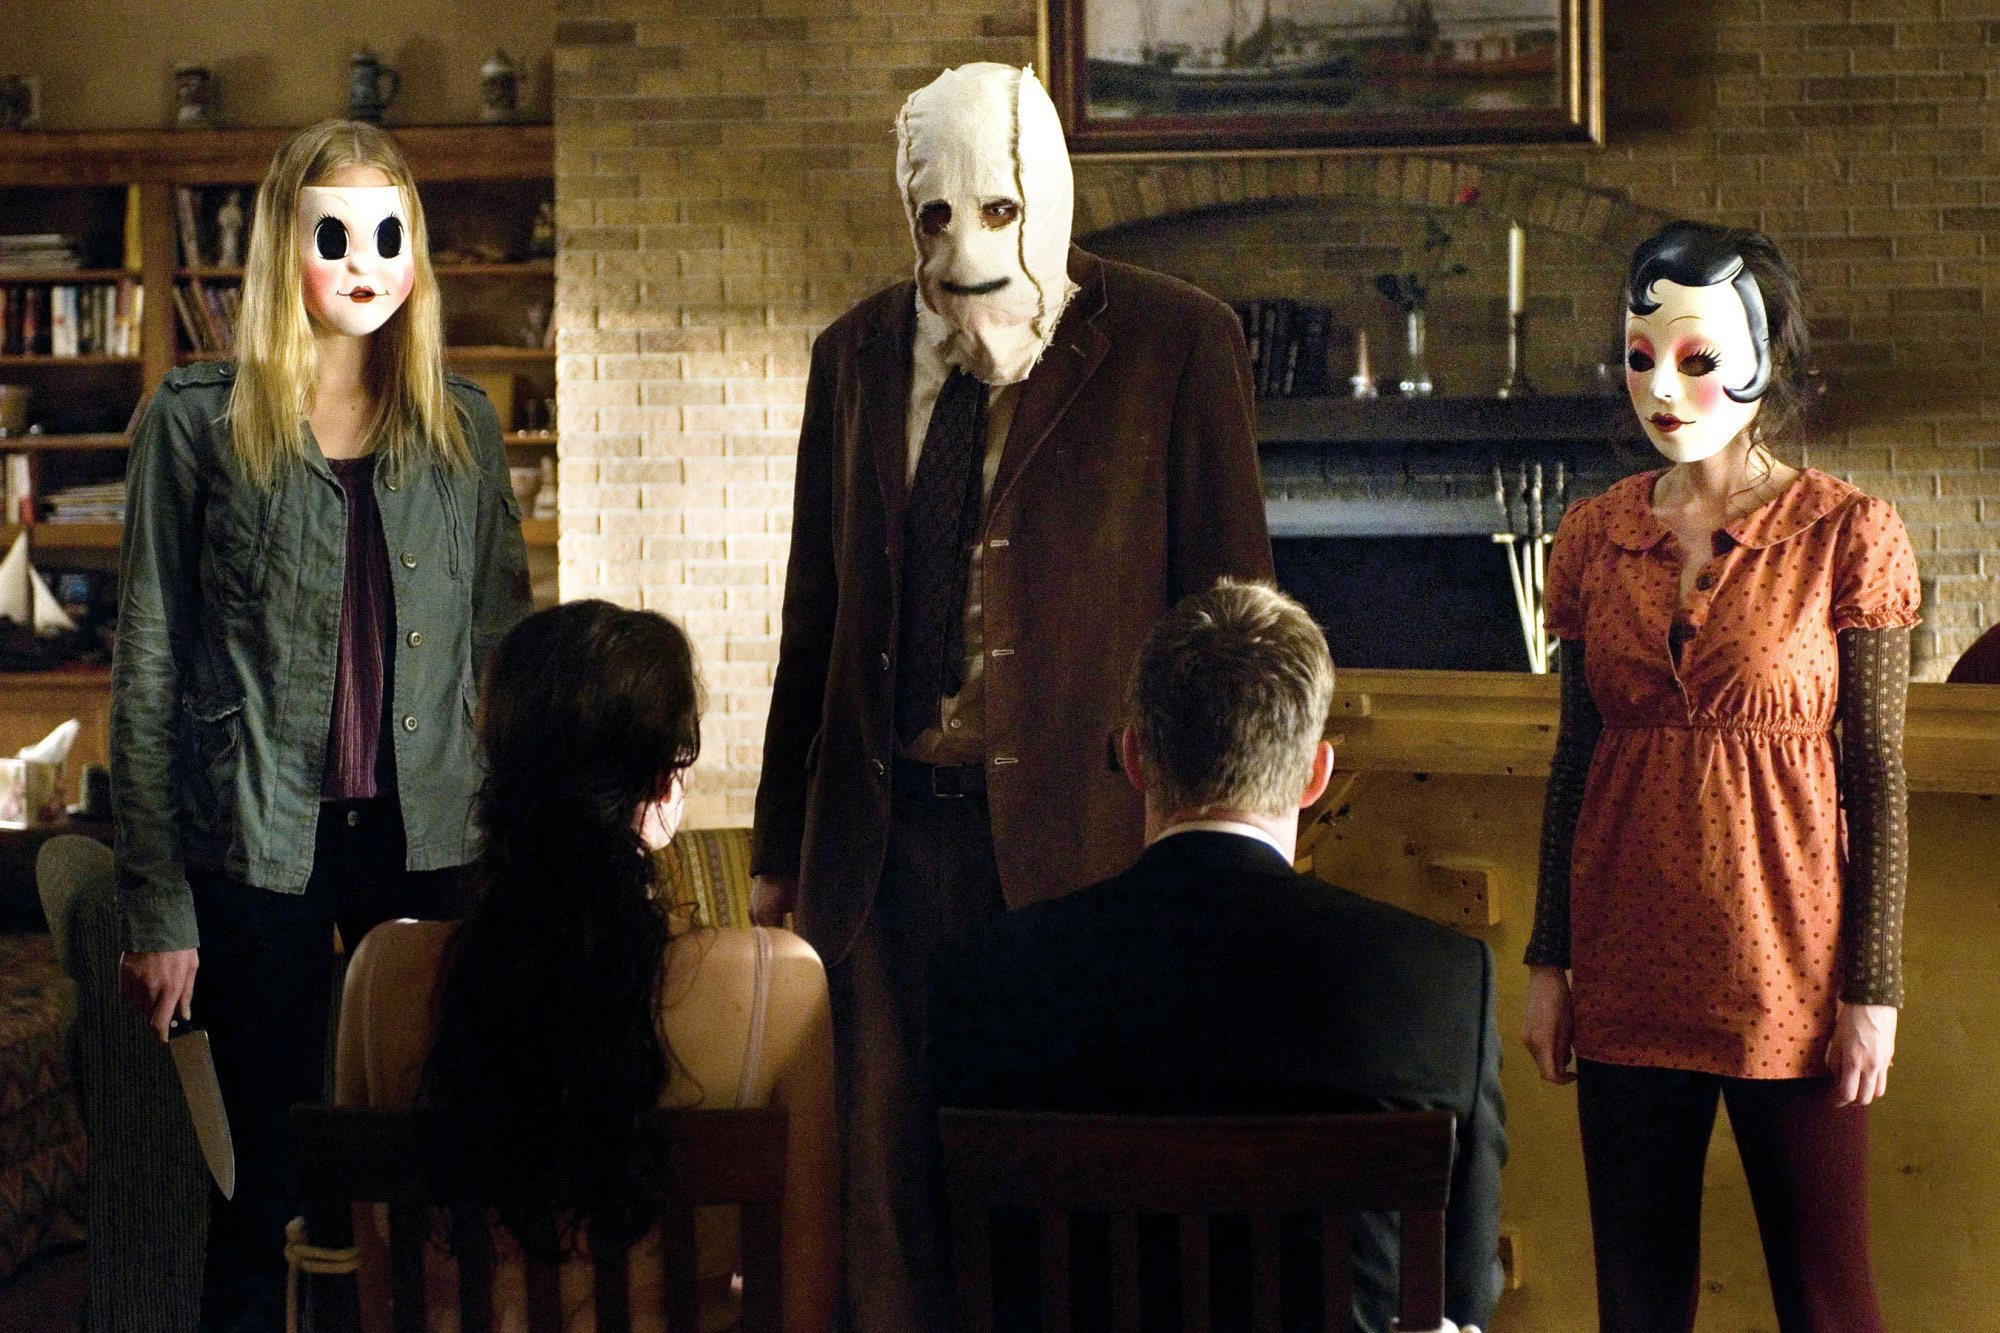 17 (tie). The Strangers: Prey at Night